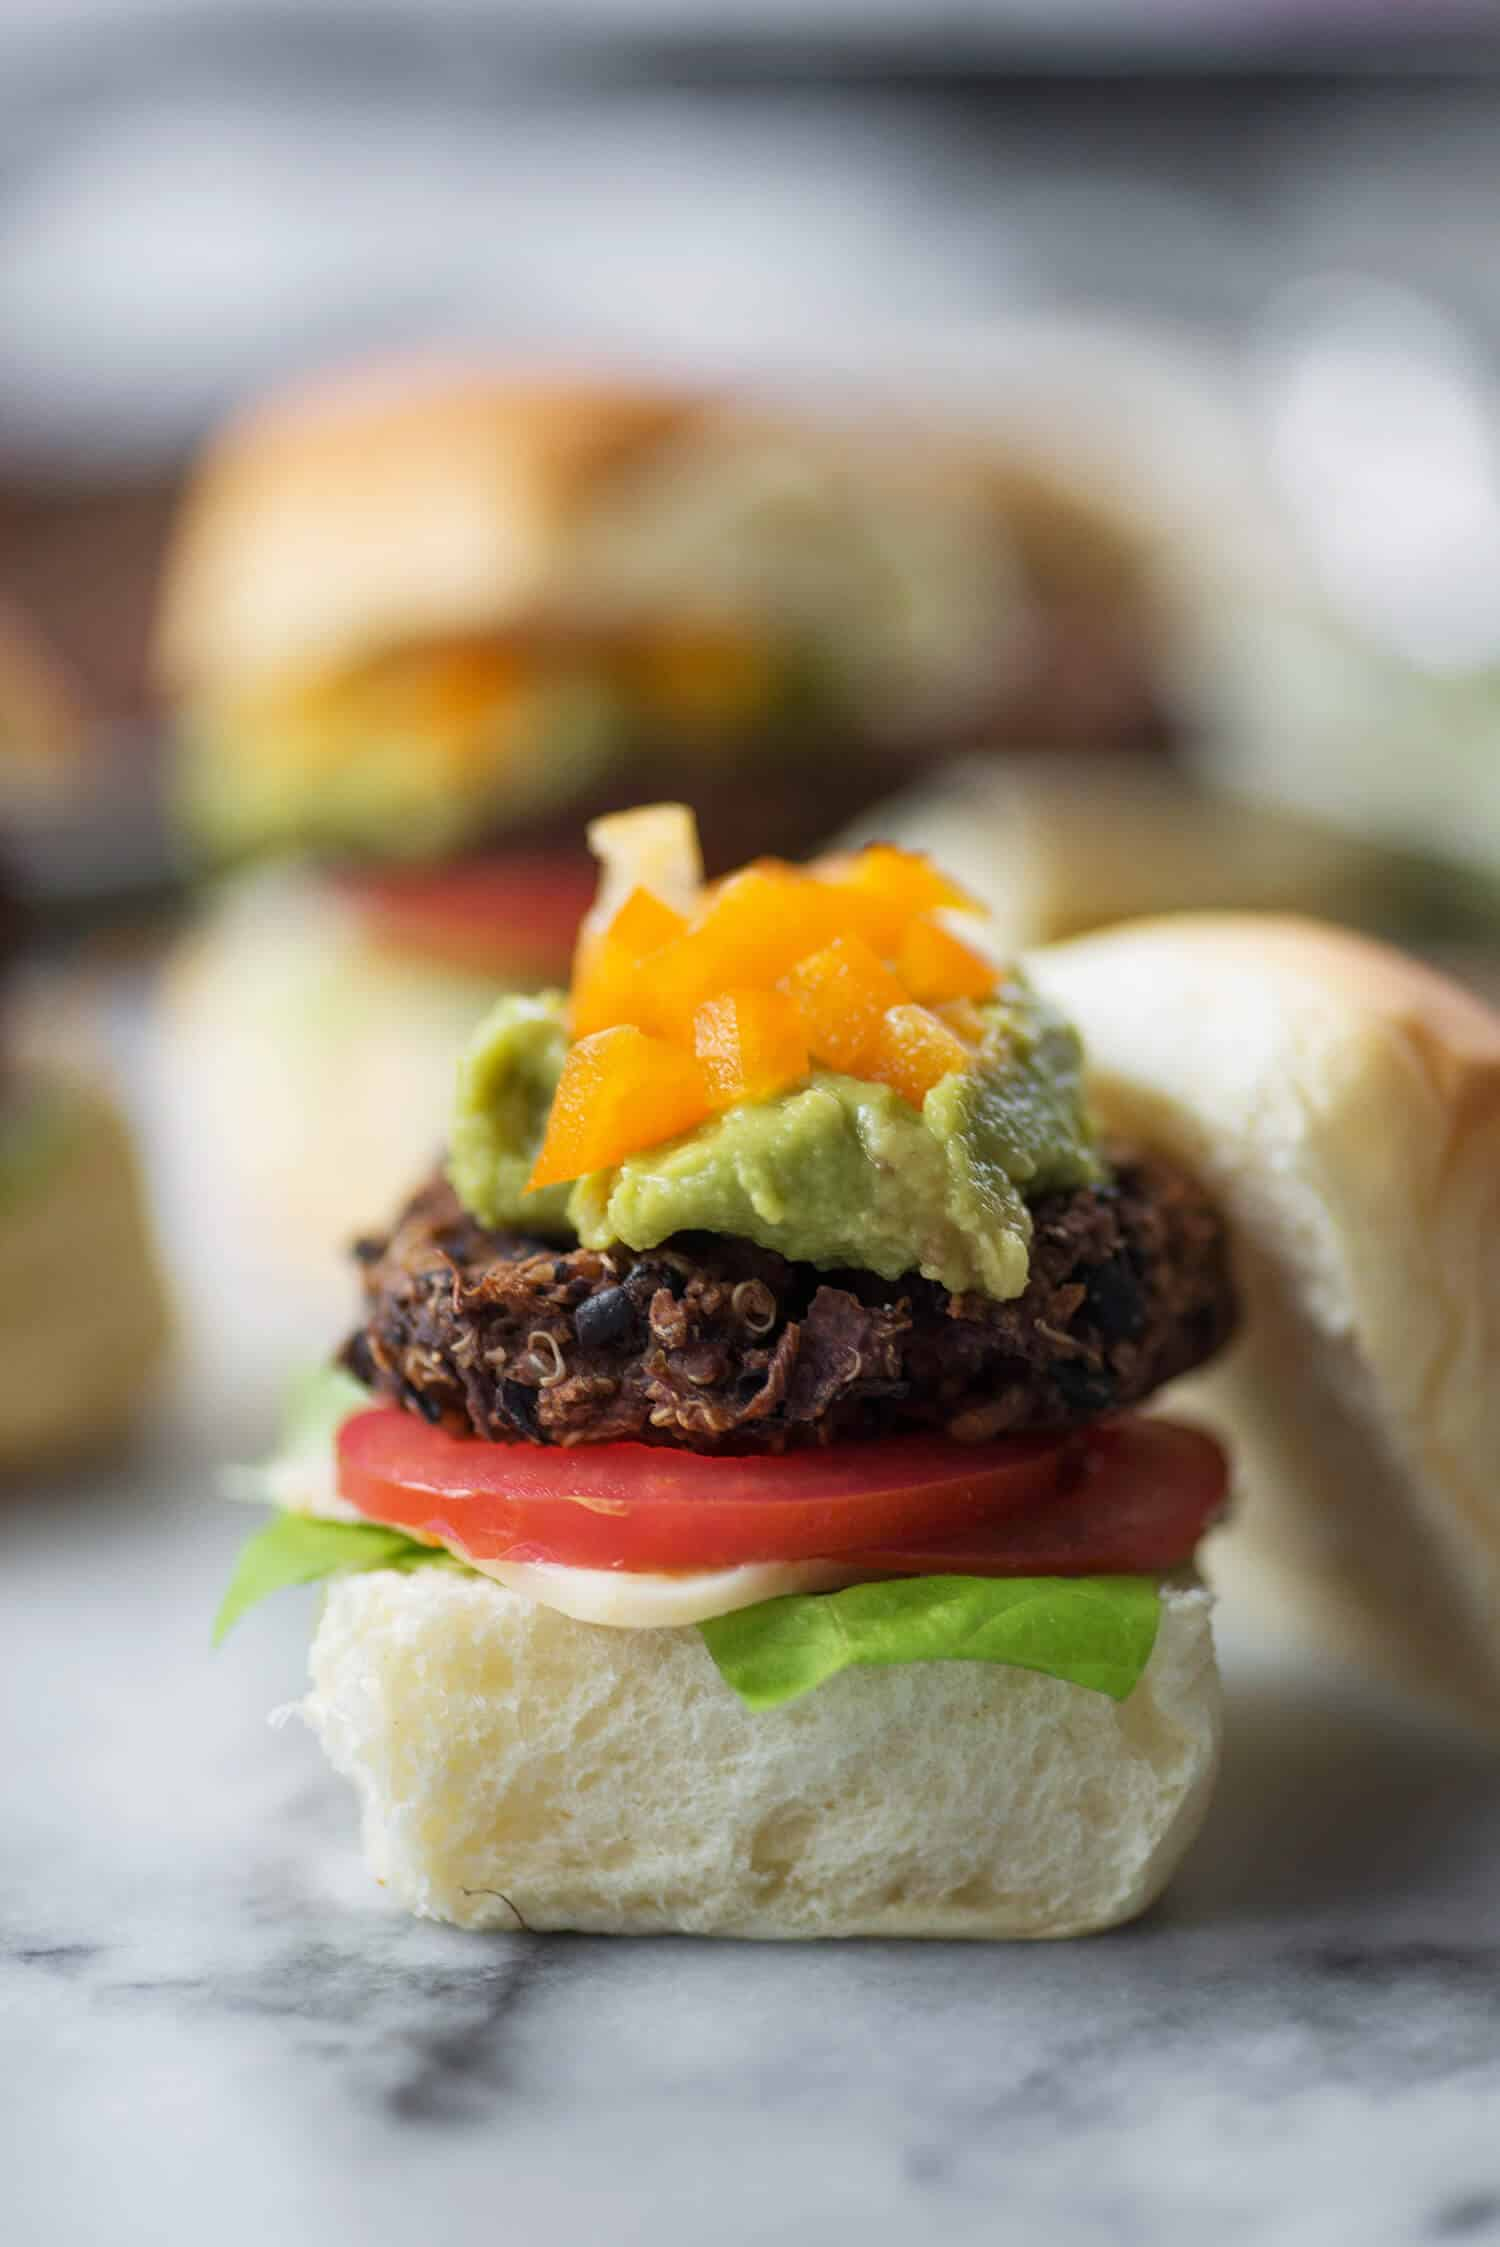 Southwest Sliders! Spiced black bean and quinoa sliders, perfect for the Superbowl or entertaining! Vegan and gluten-free (with GF bun) | www.delishknowledge.com